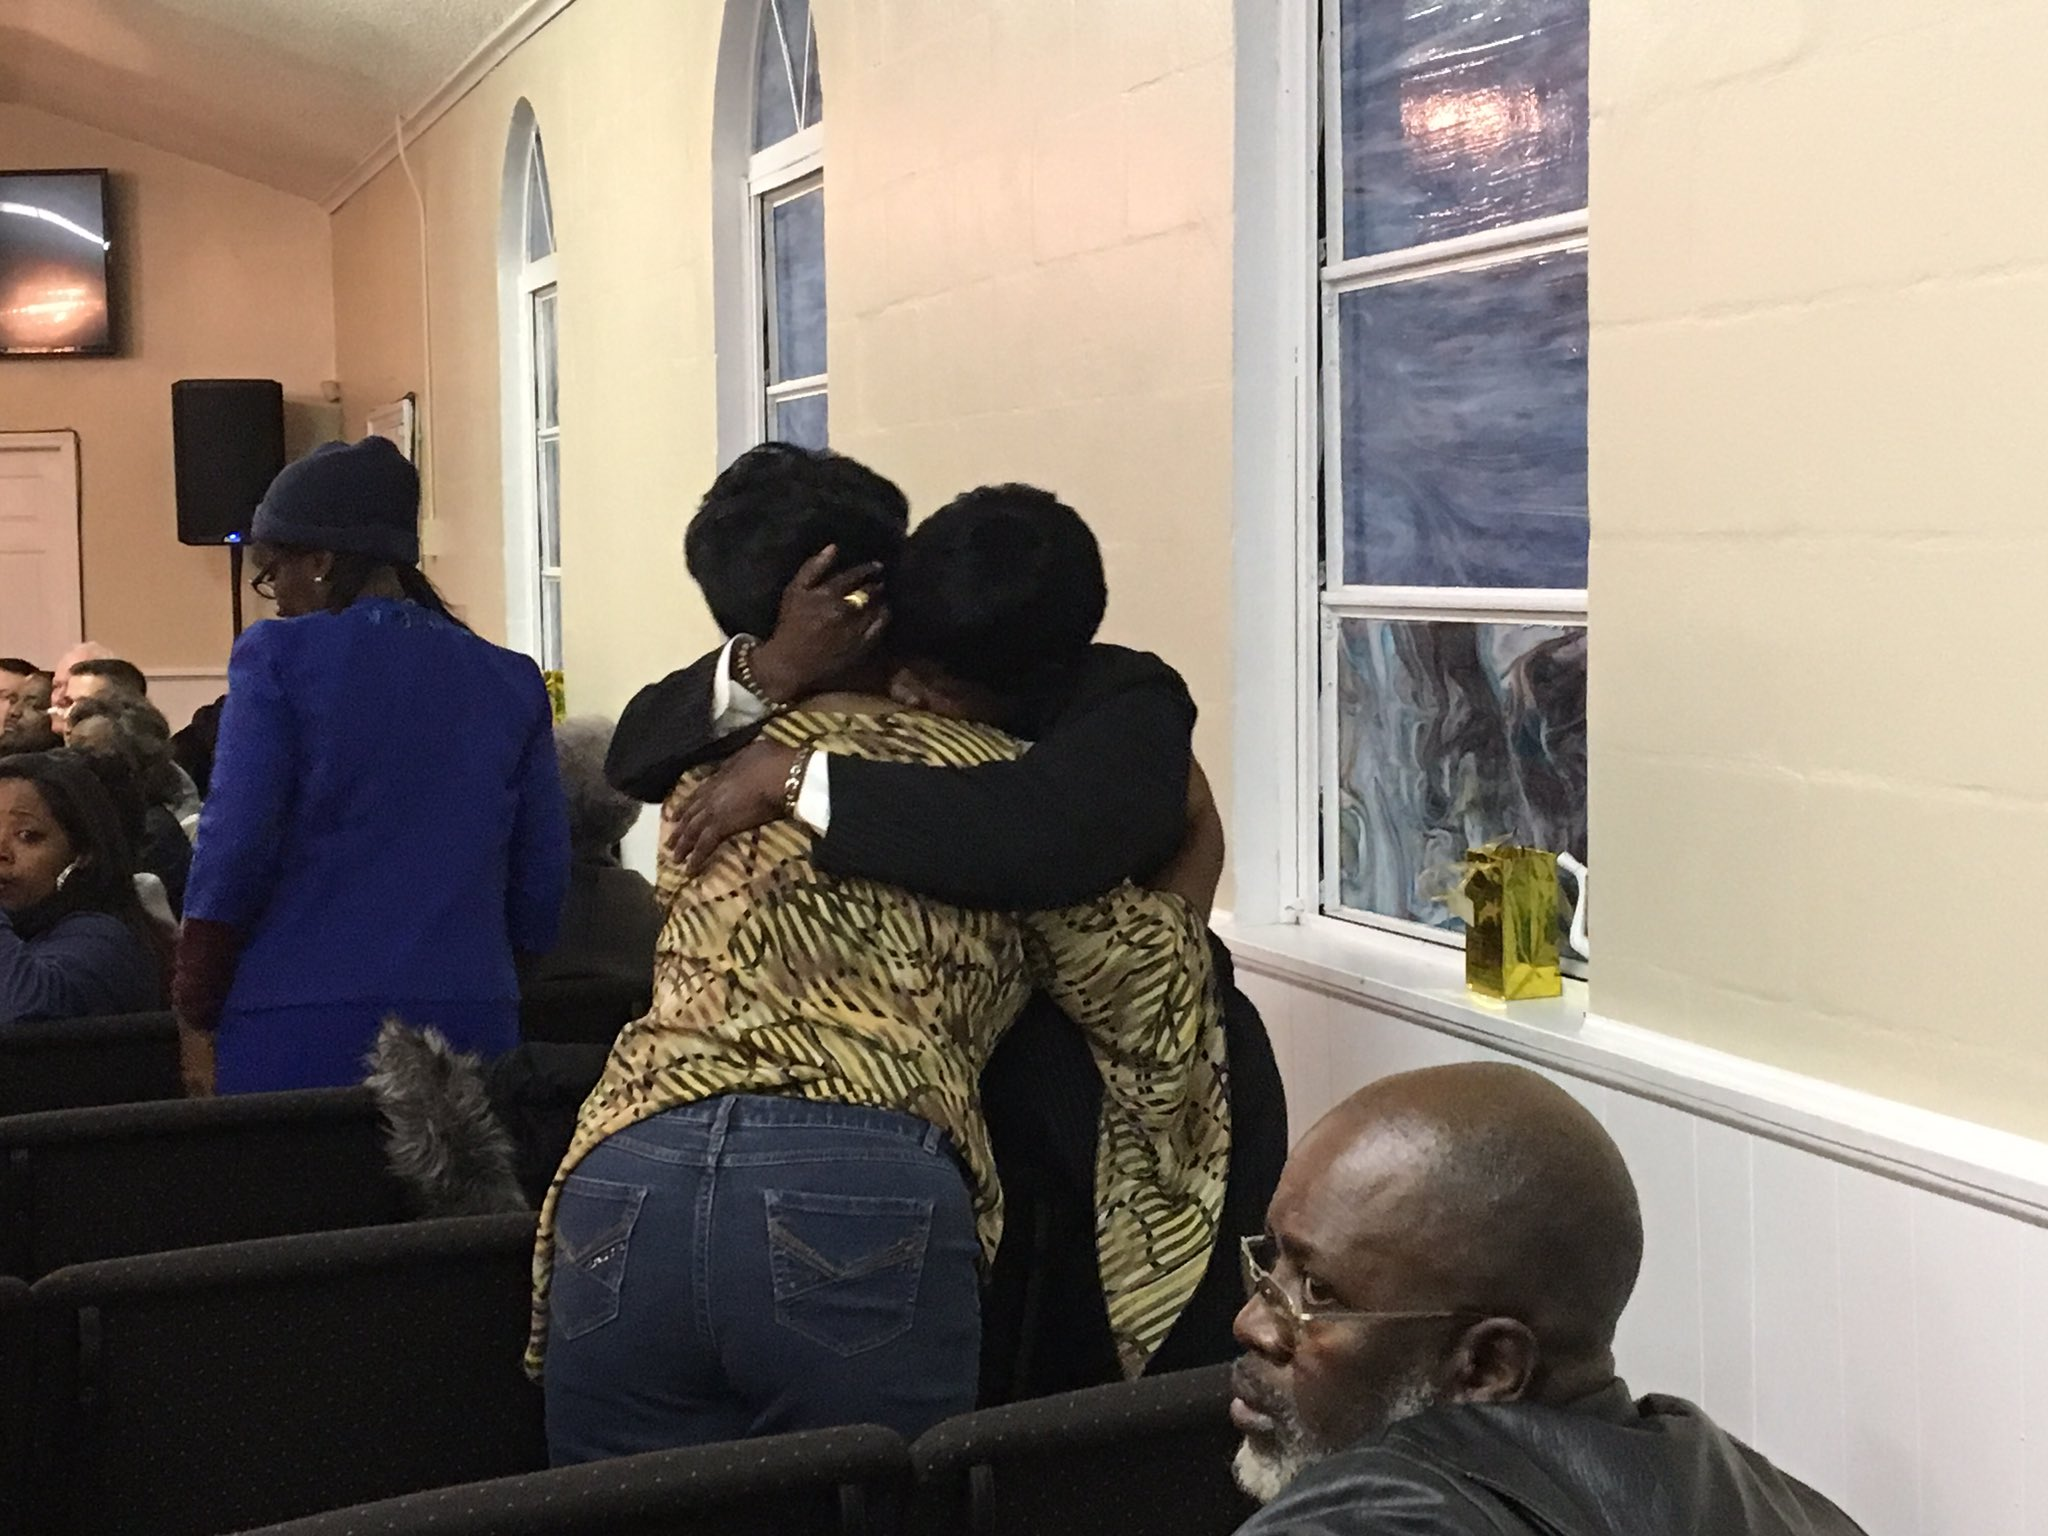 The mothers of two shooting victims embrace during the Stop The Violence rally Thursday night in Alachua. Gabby Arzola/WGFL